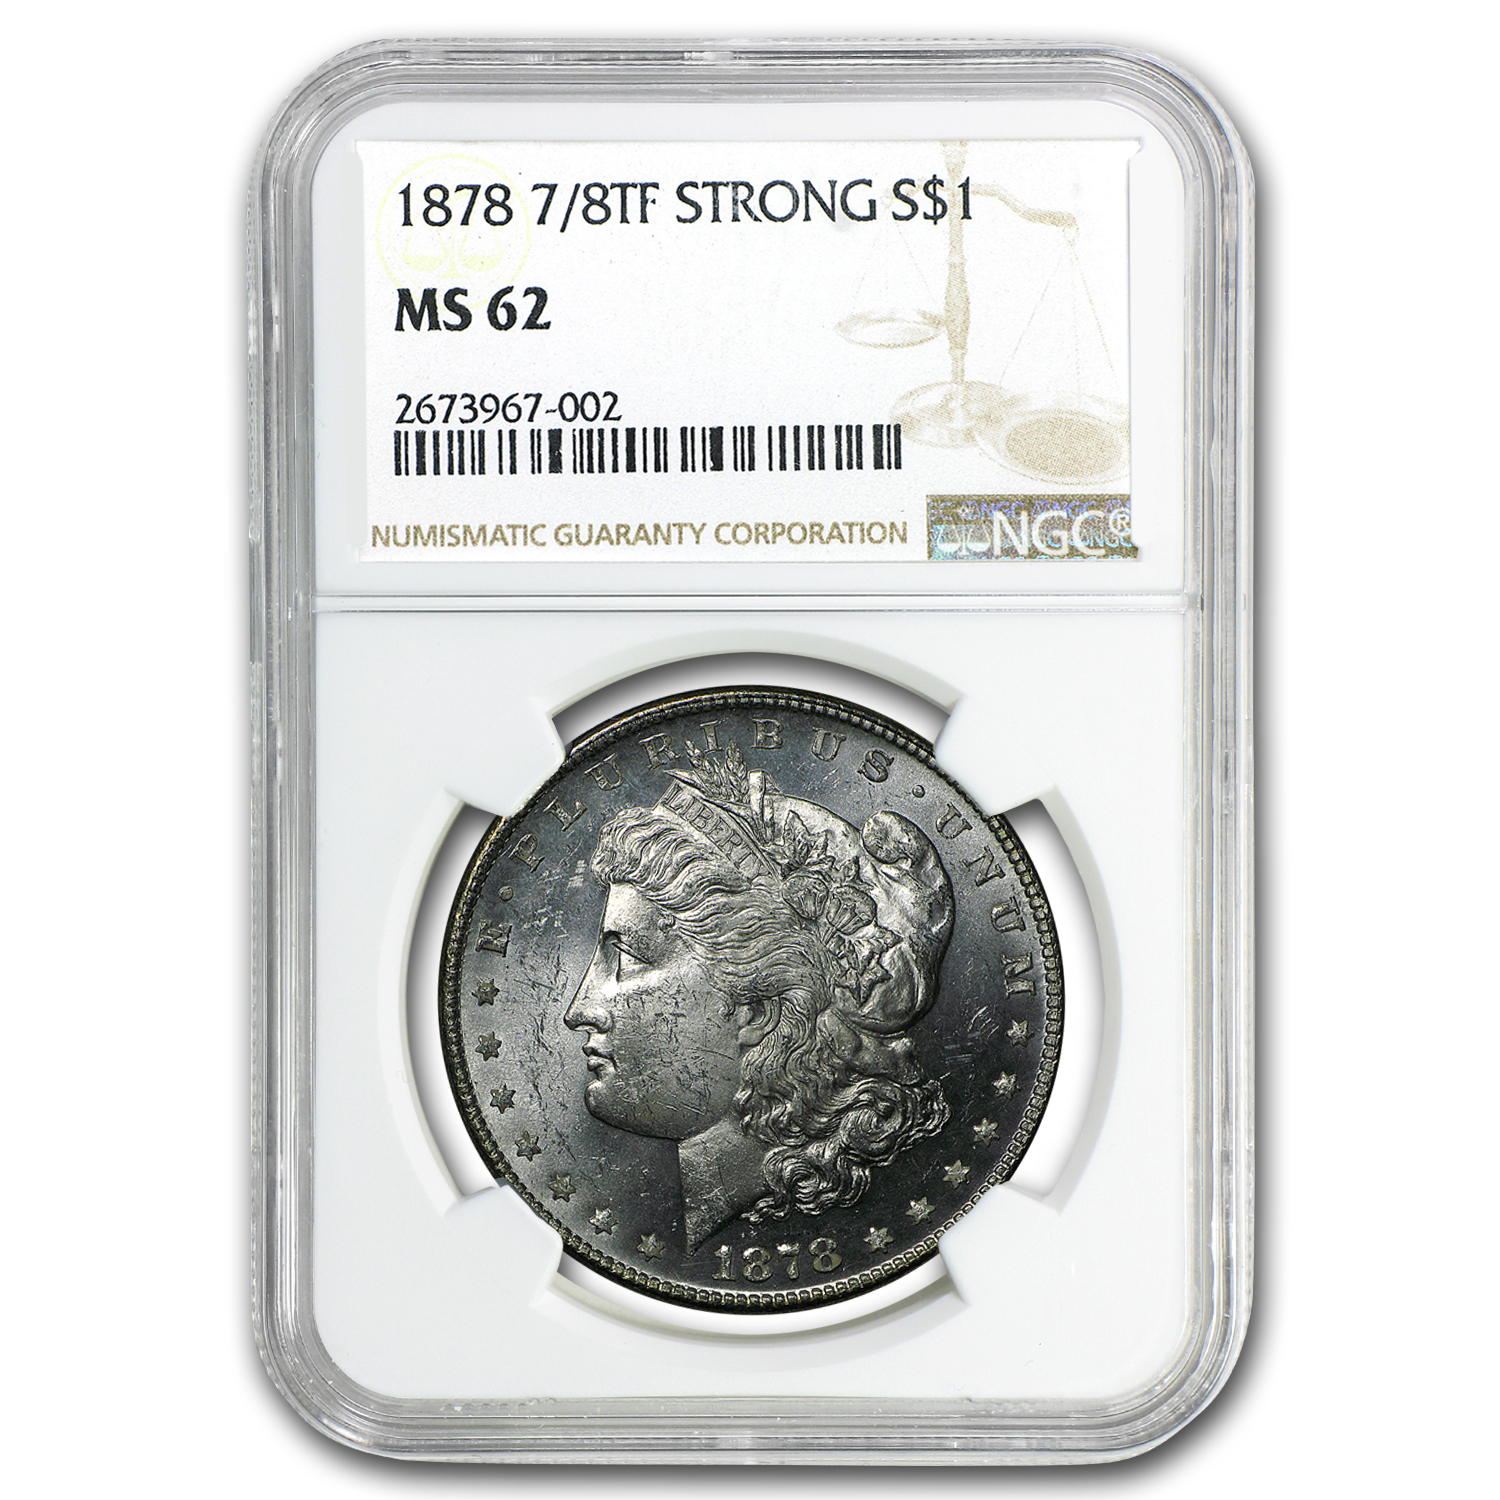 1878 Morgan Dollar 7/8 TF MS-62 NGC (Strong)